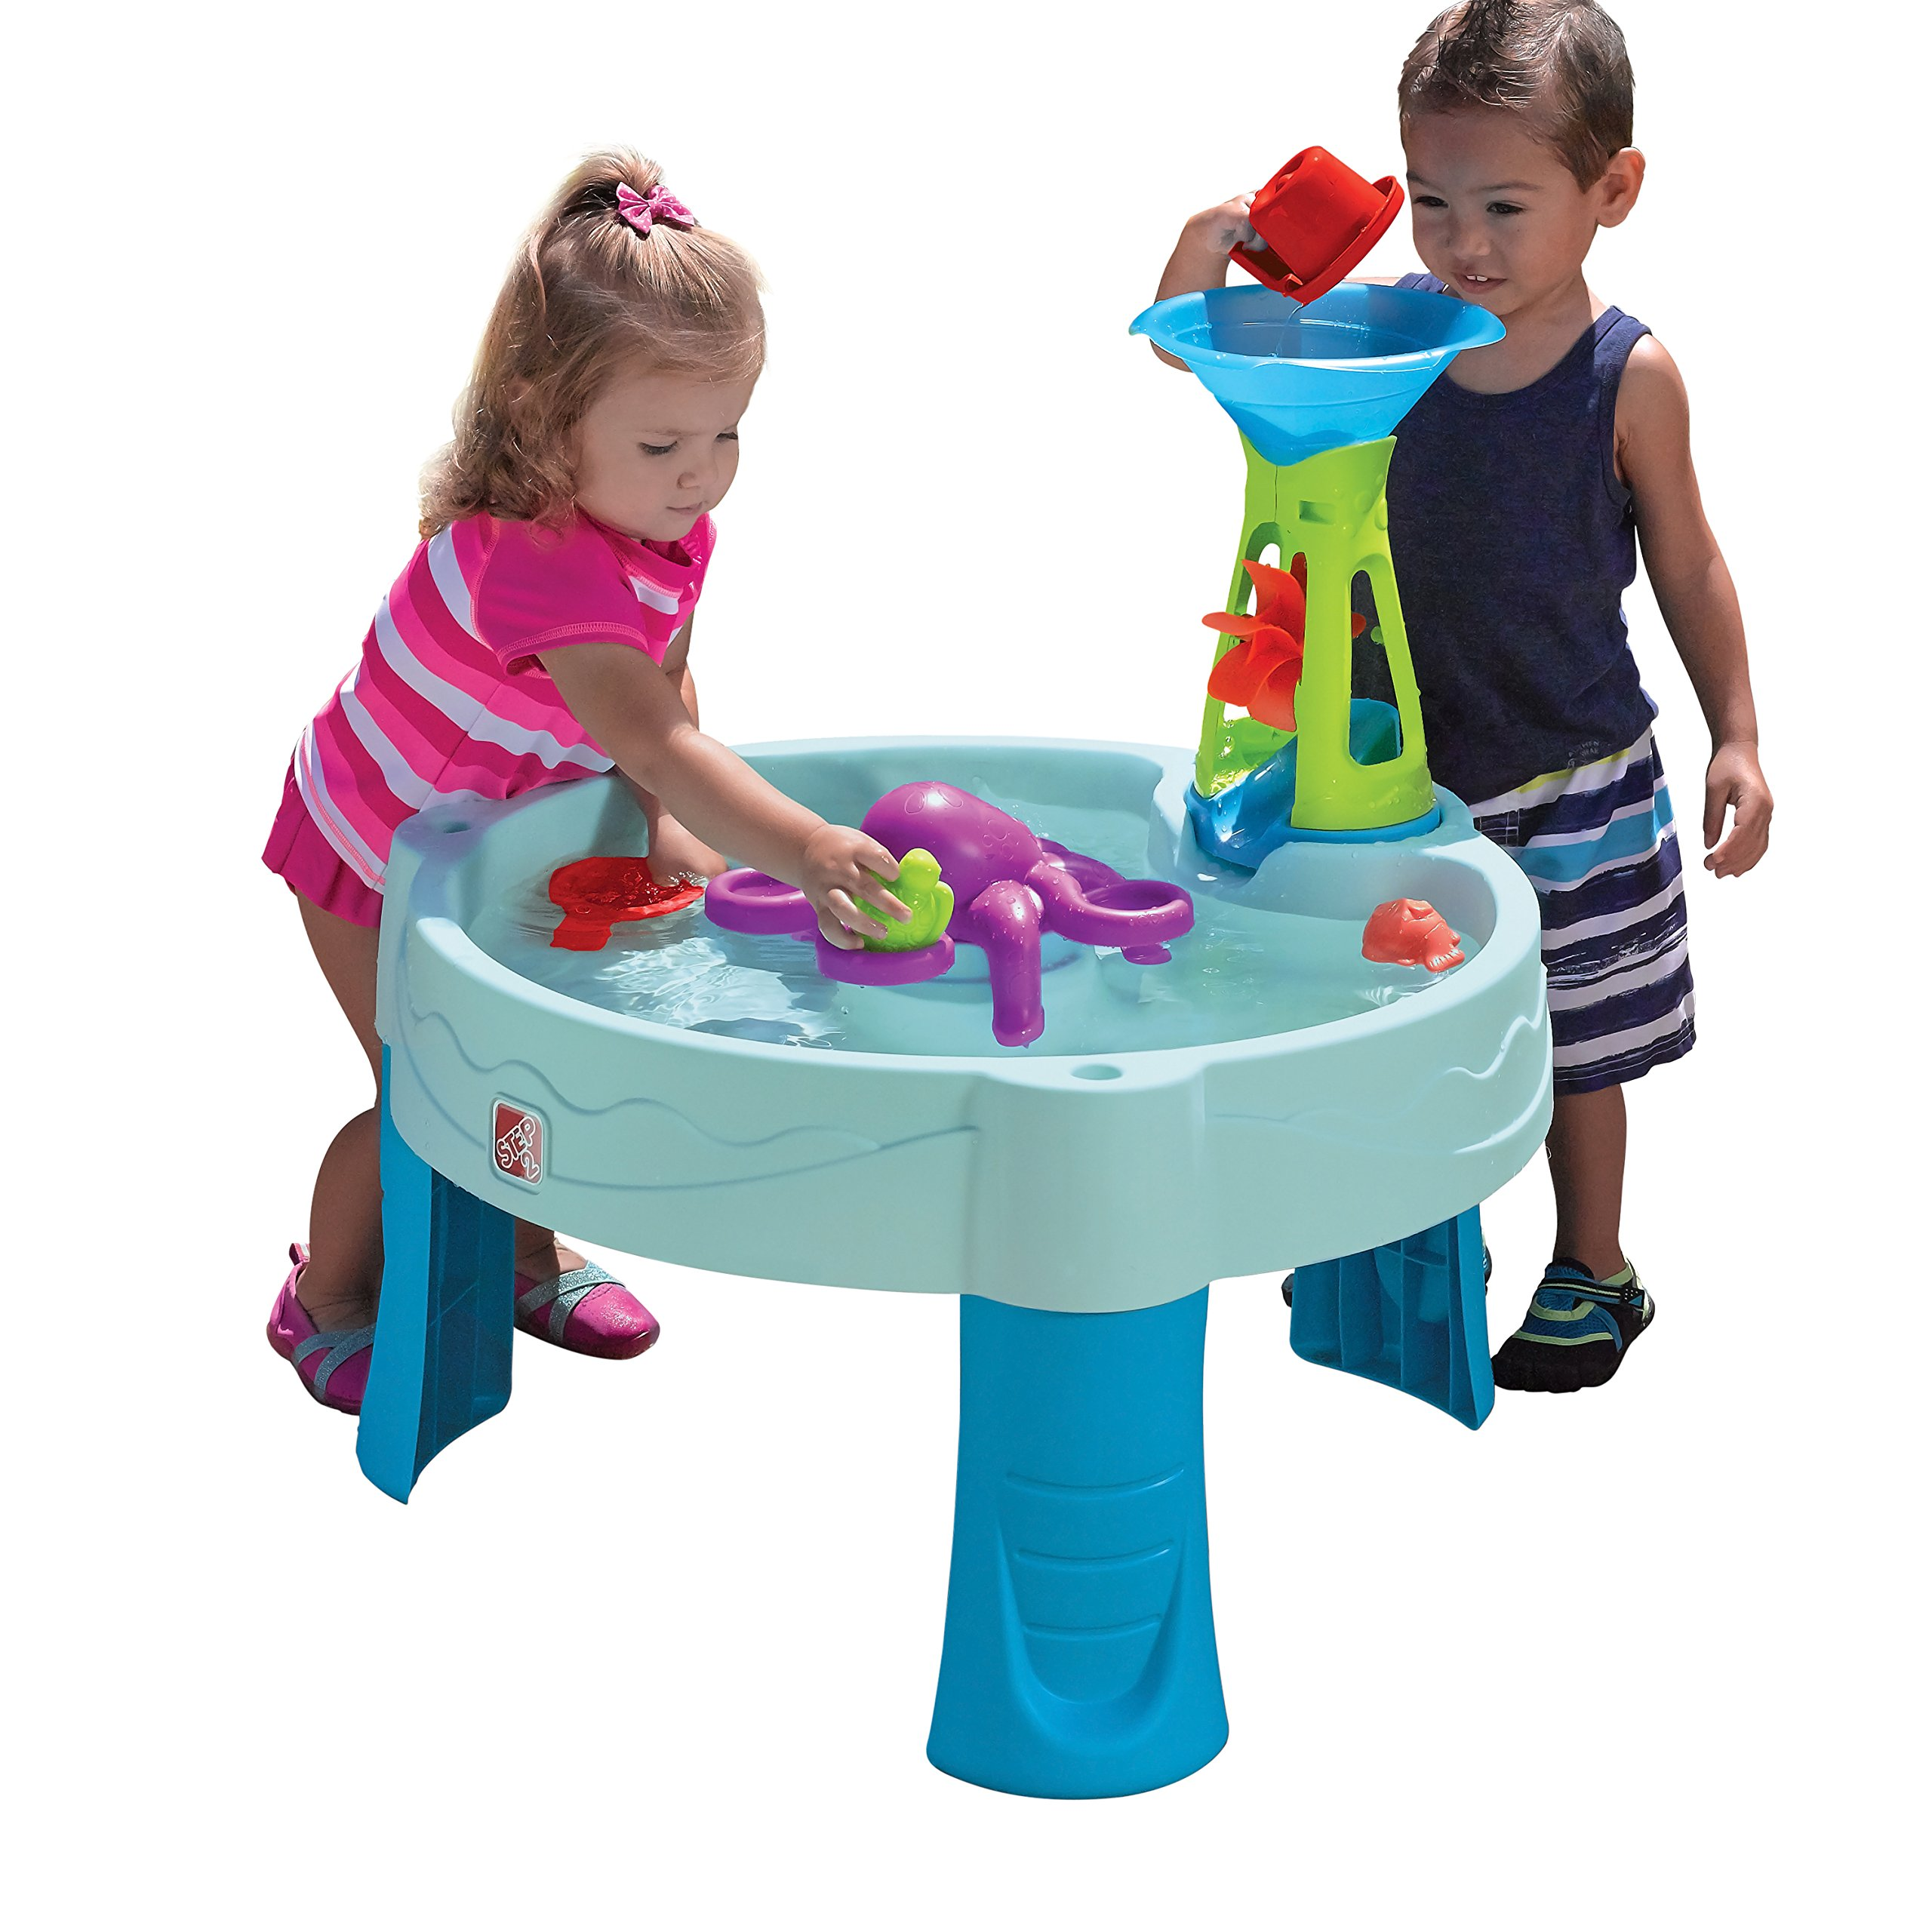 Step2 Octopus Spinner Water Table Playset by Step2